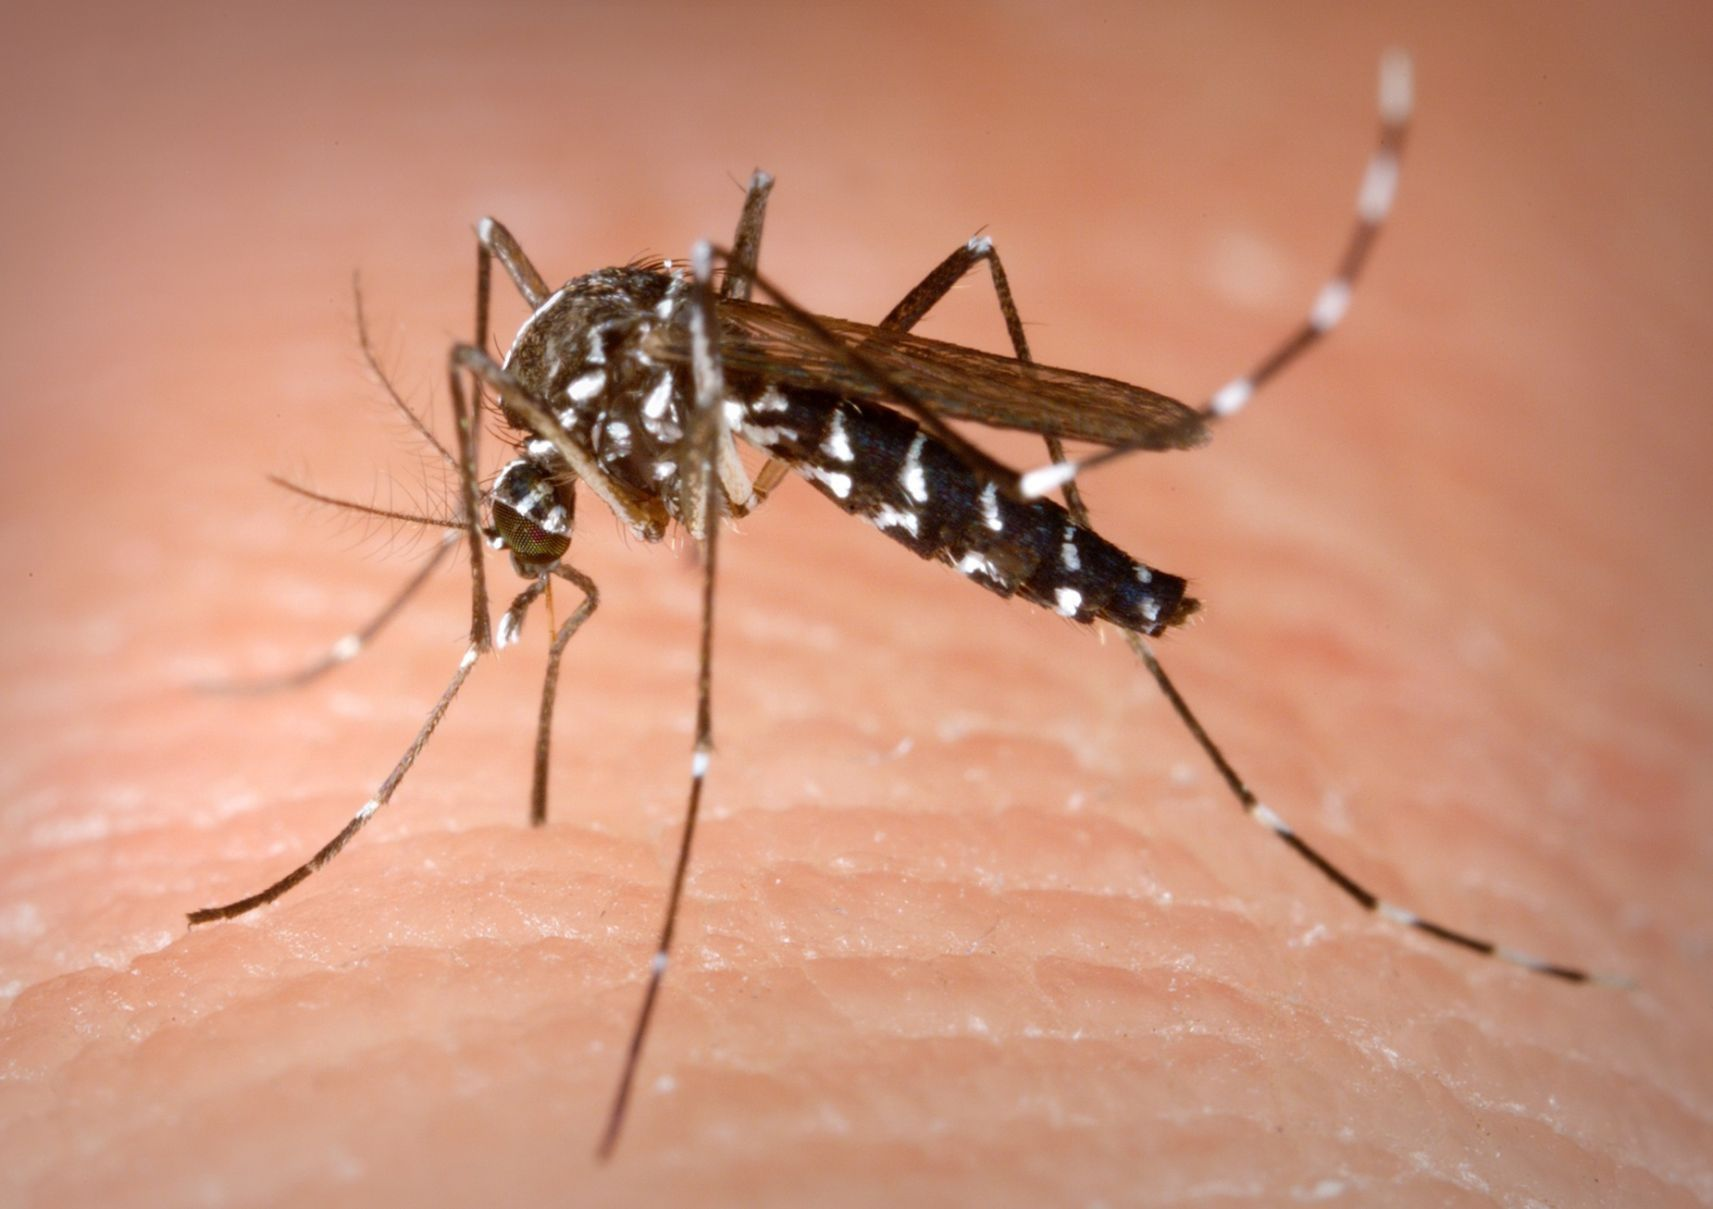 First human West Nile Virus death reported in IL for 2017